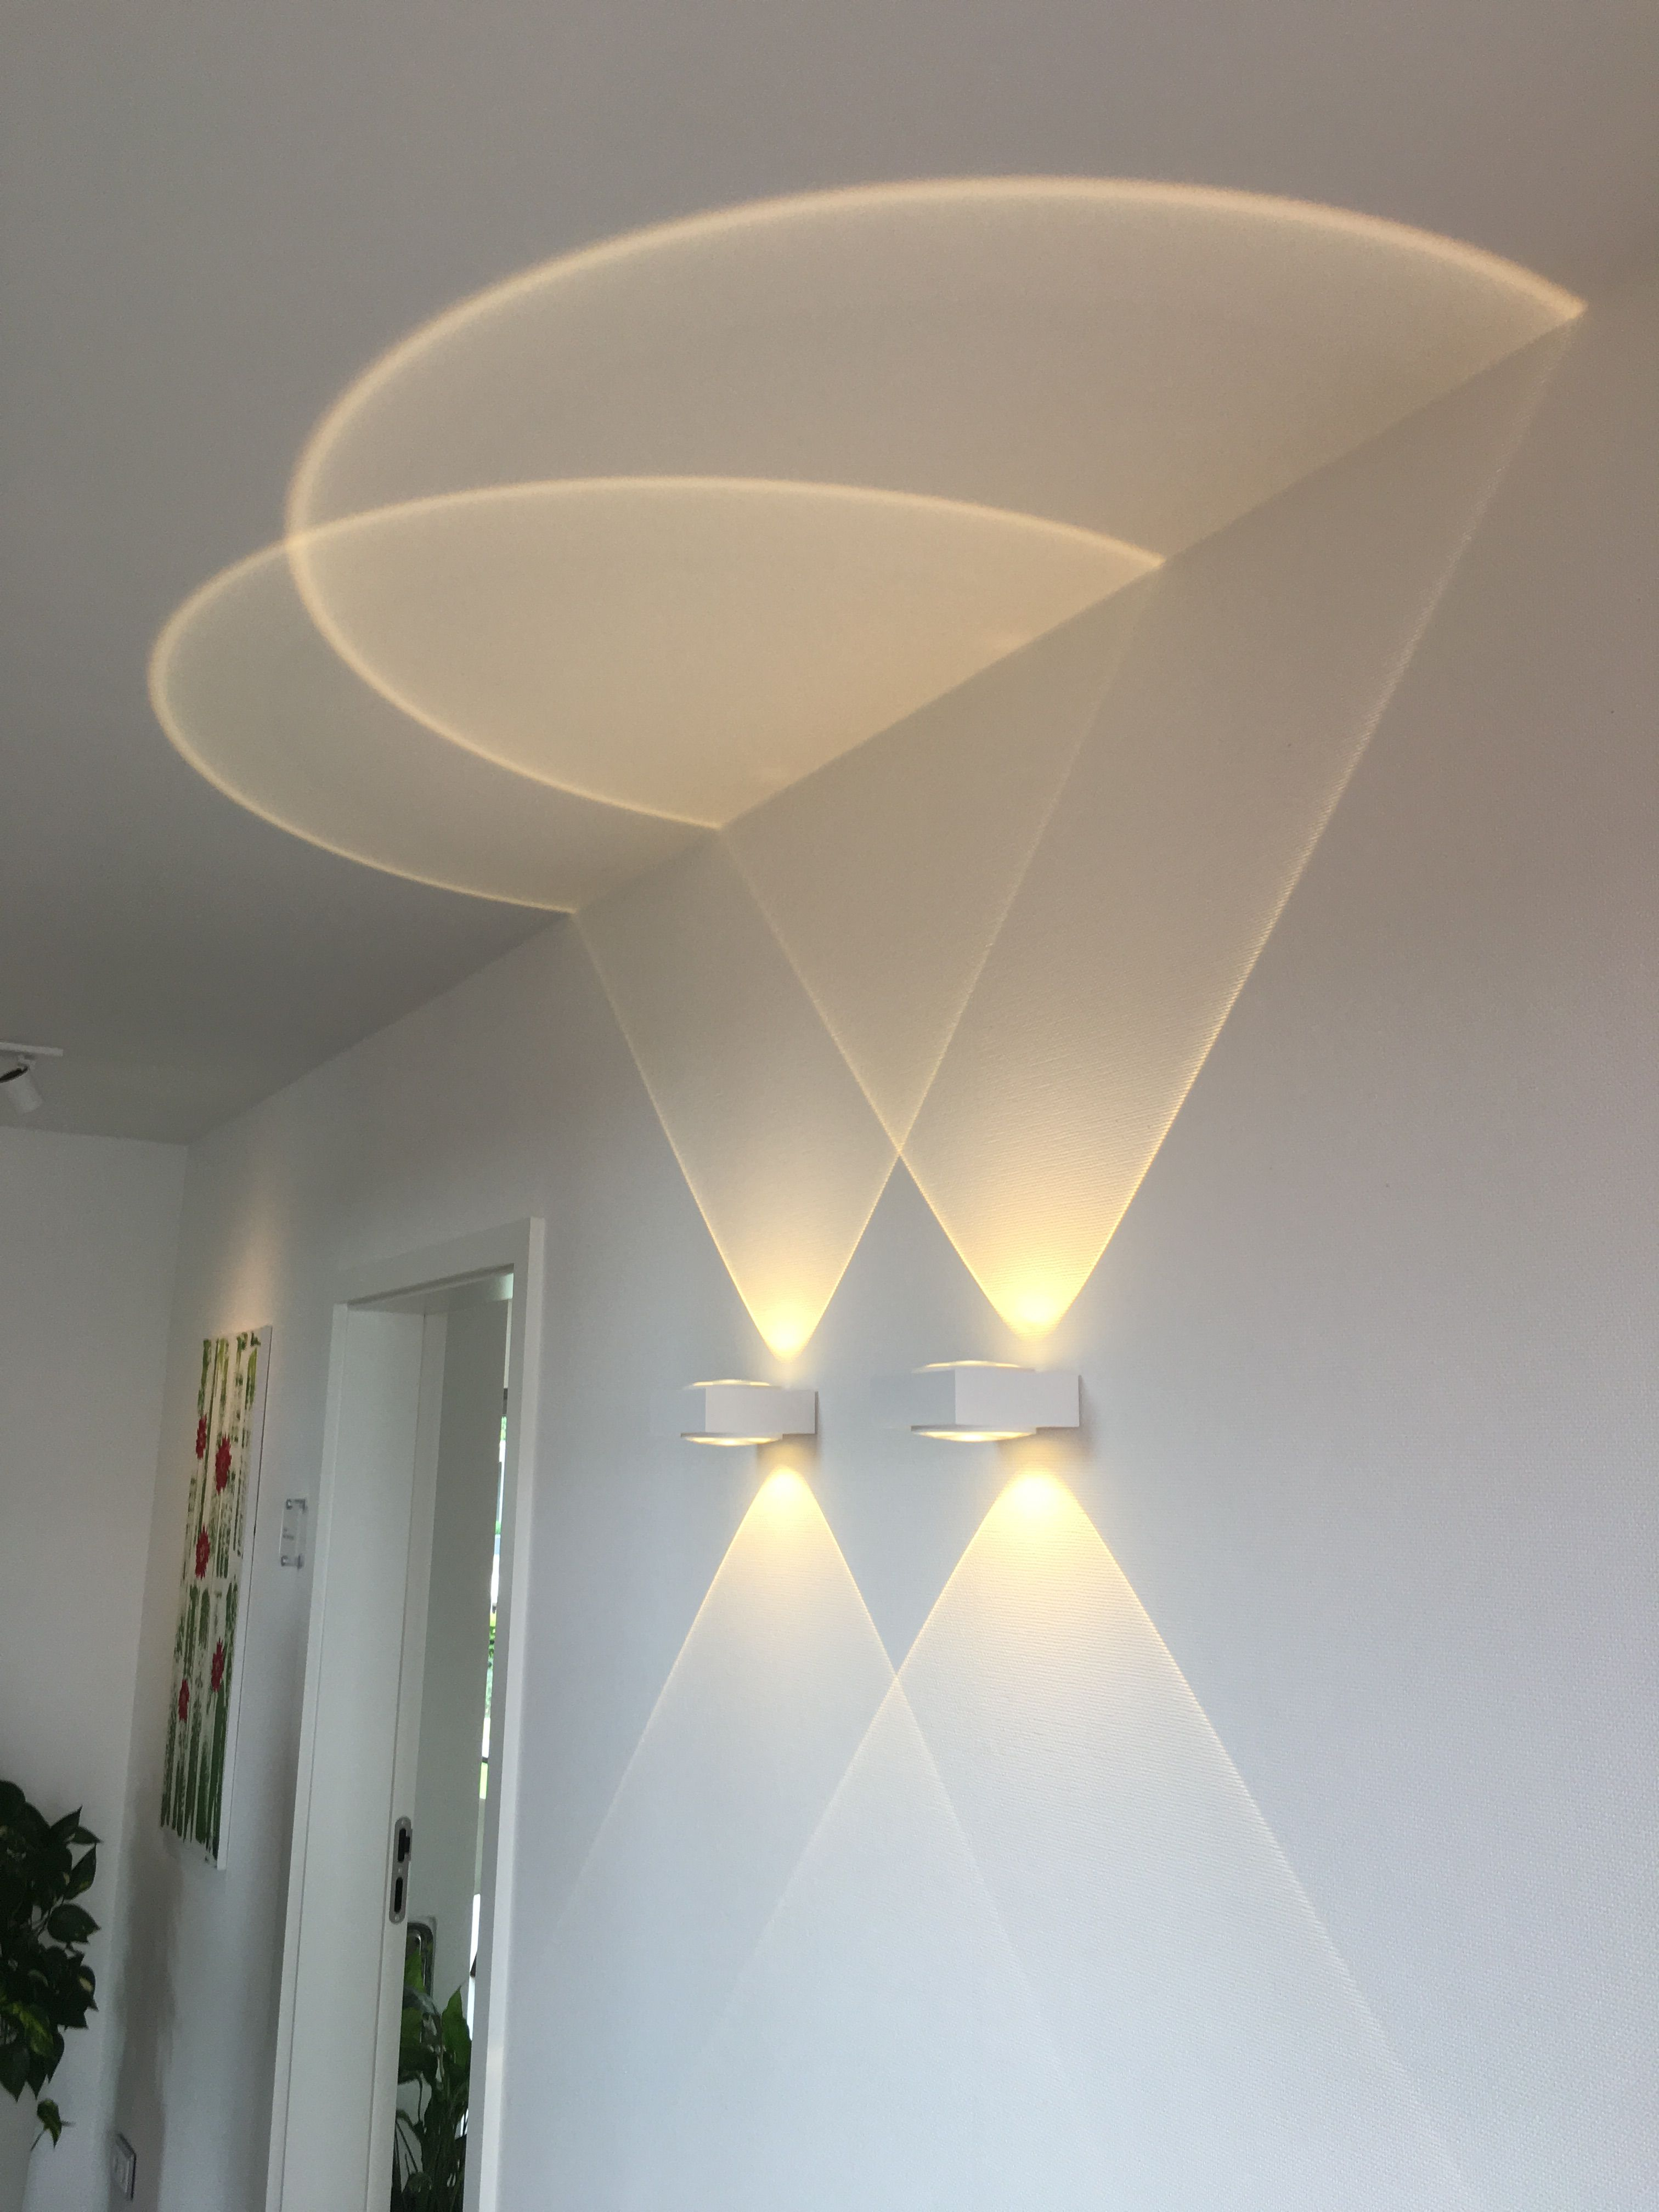 Modern Lamps Led Cool Lights Wall Sconces Lighting In 2019 Modern Led